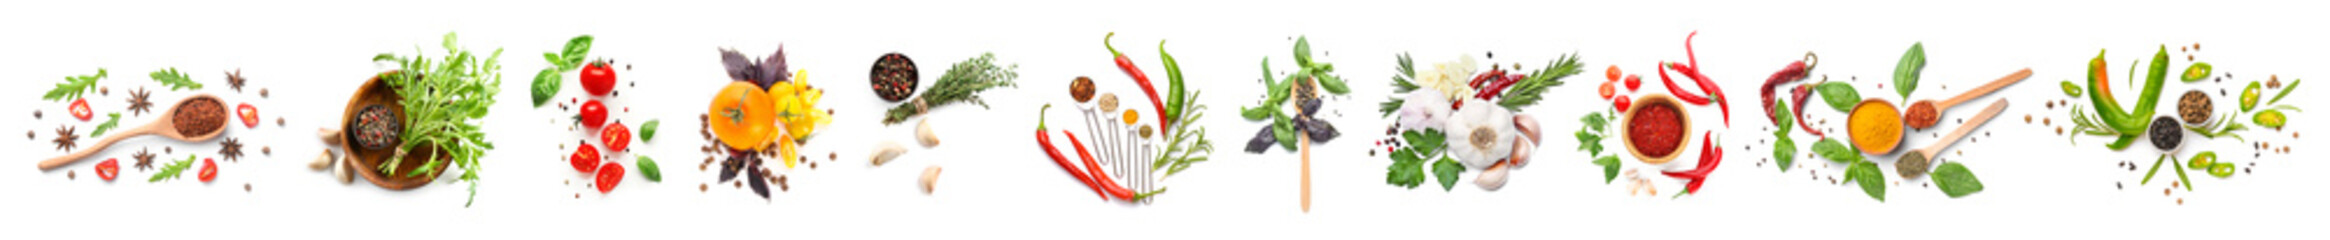 Deurstickers Verse groenten Different fresh spices, herbs and vegetables on white background